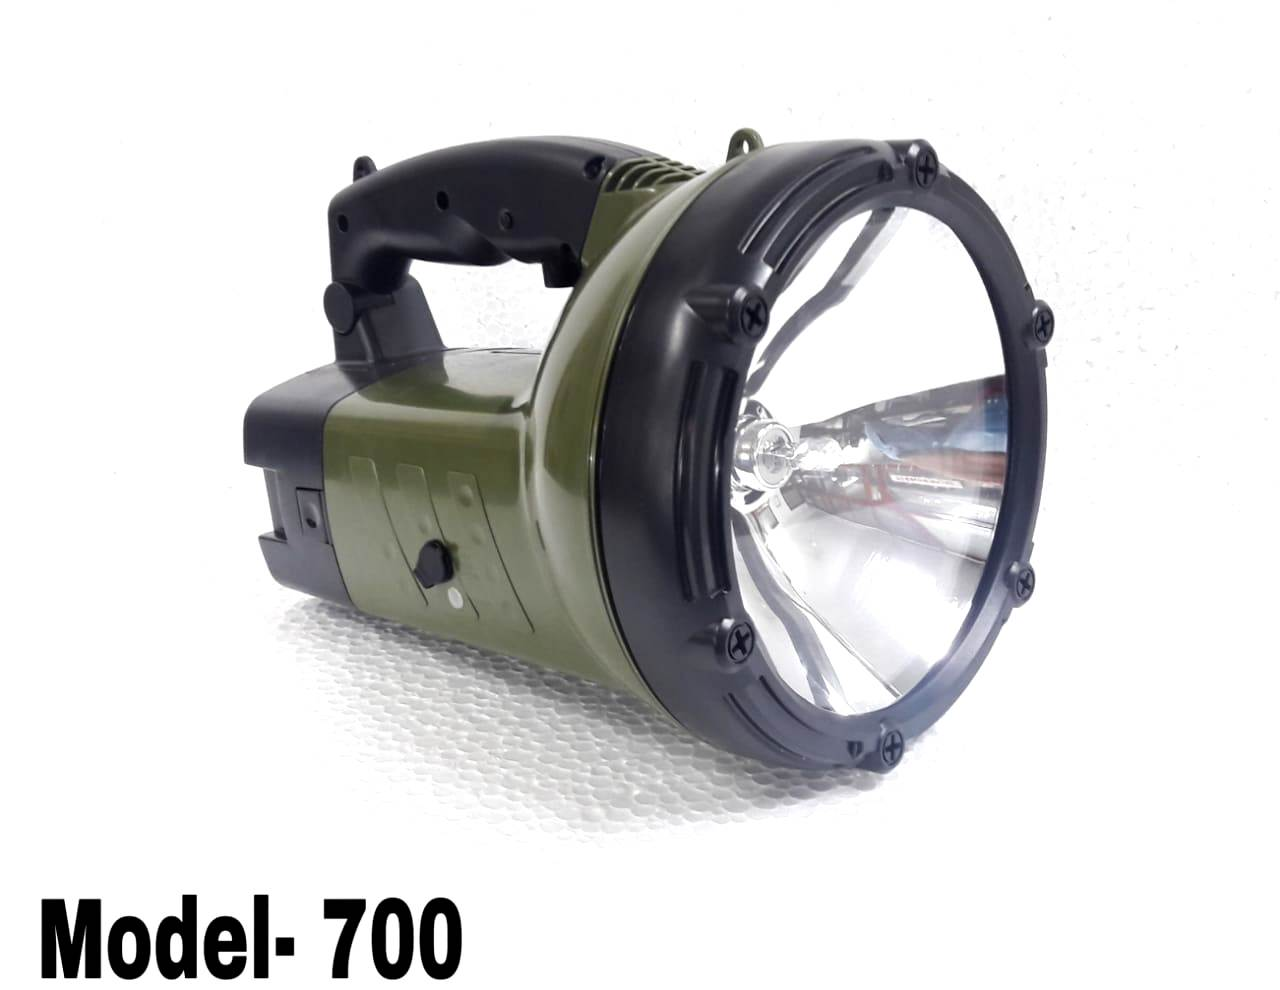 55 Watt Searchlight - LED Bulb - Rechargeable Search Light / Torch. (Model: HSL210 )